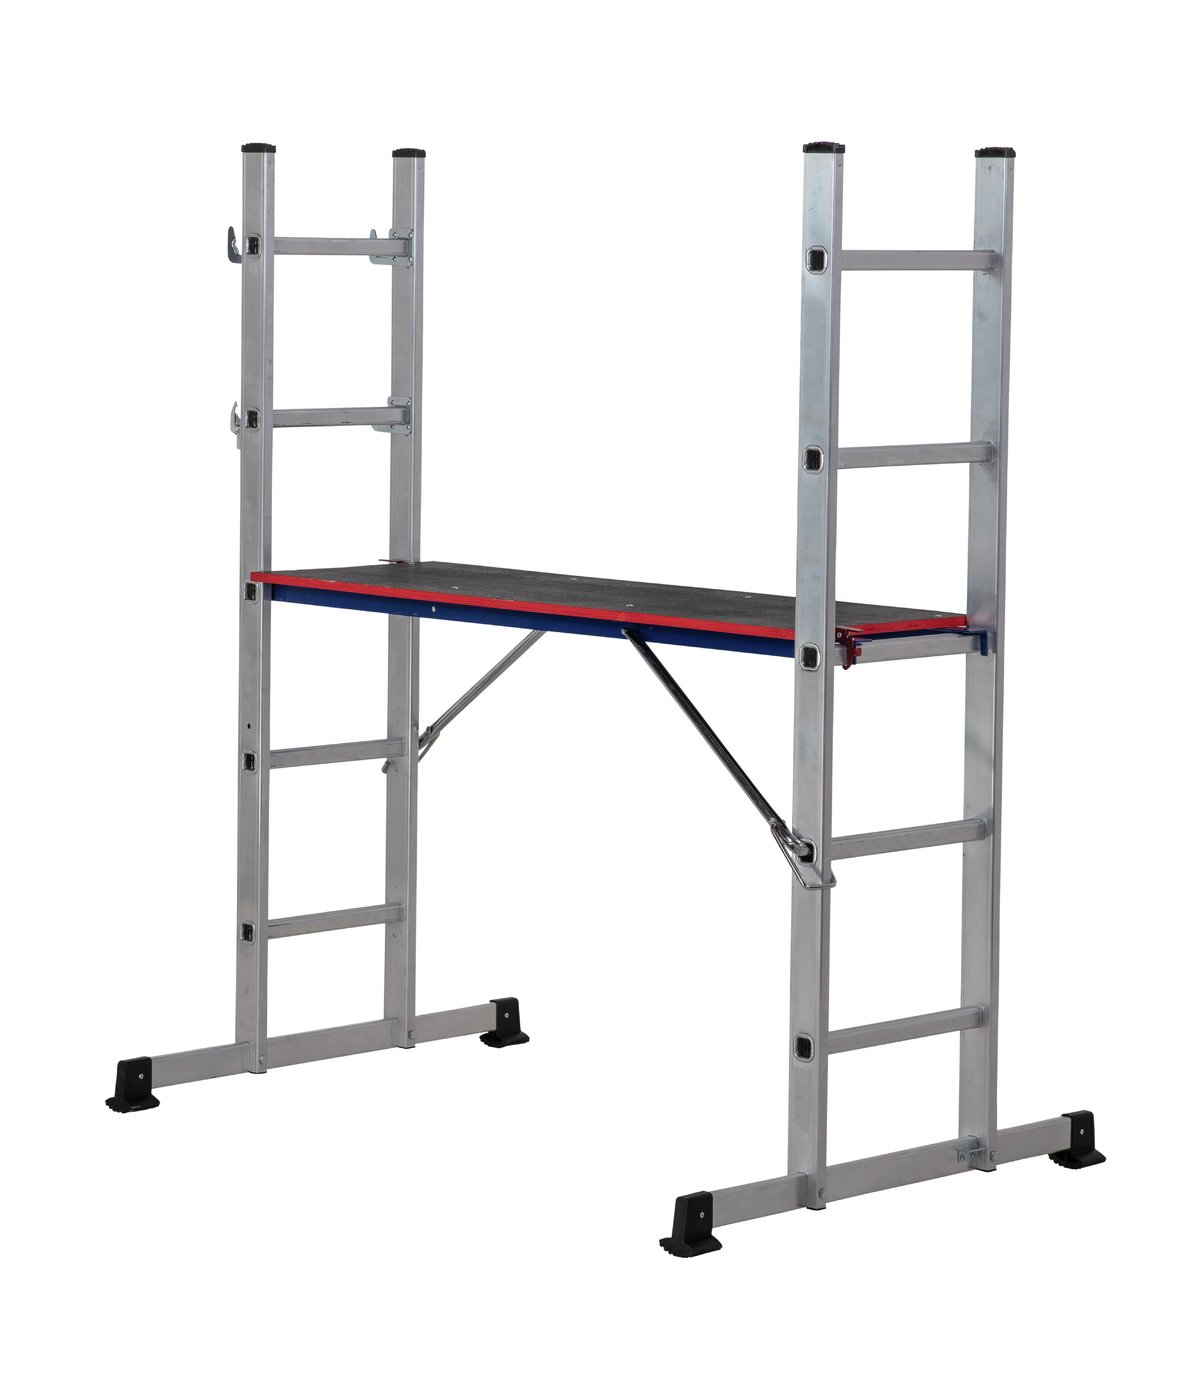 Werner 5 in 1 Combination Ladder